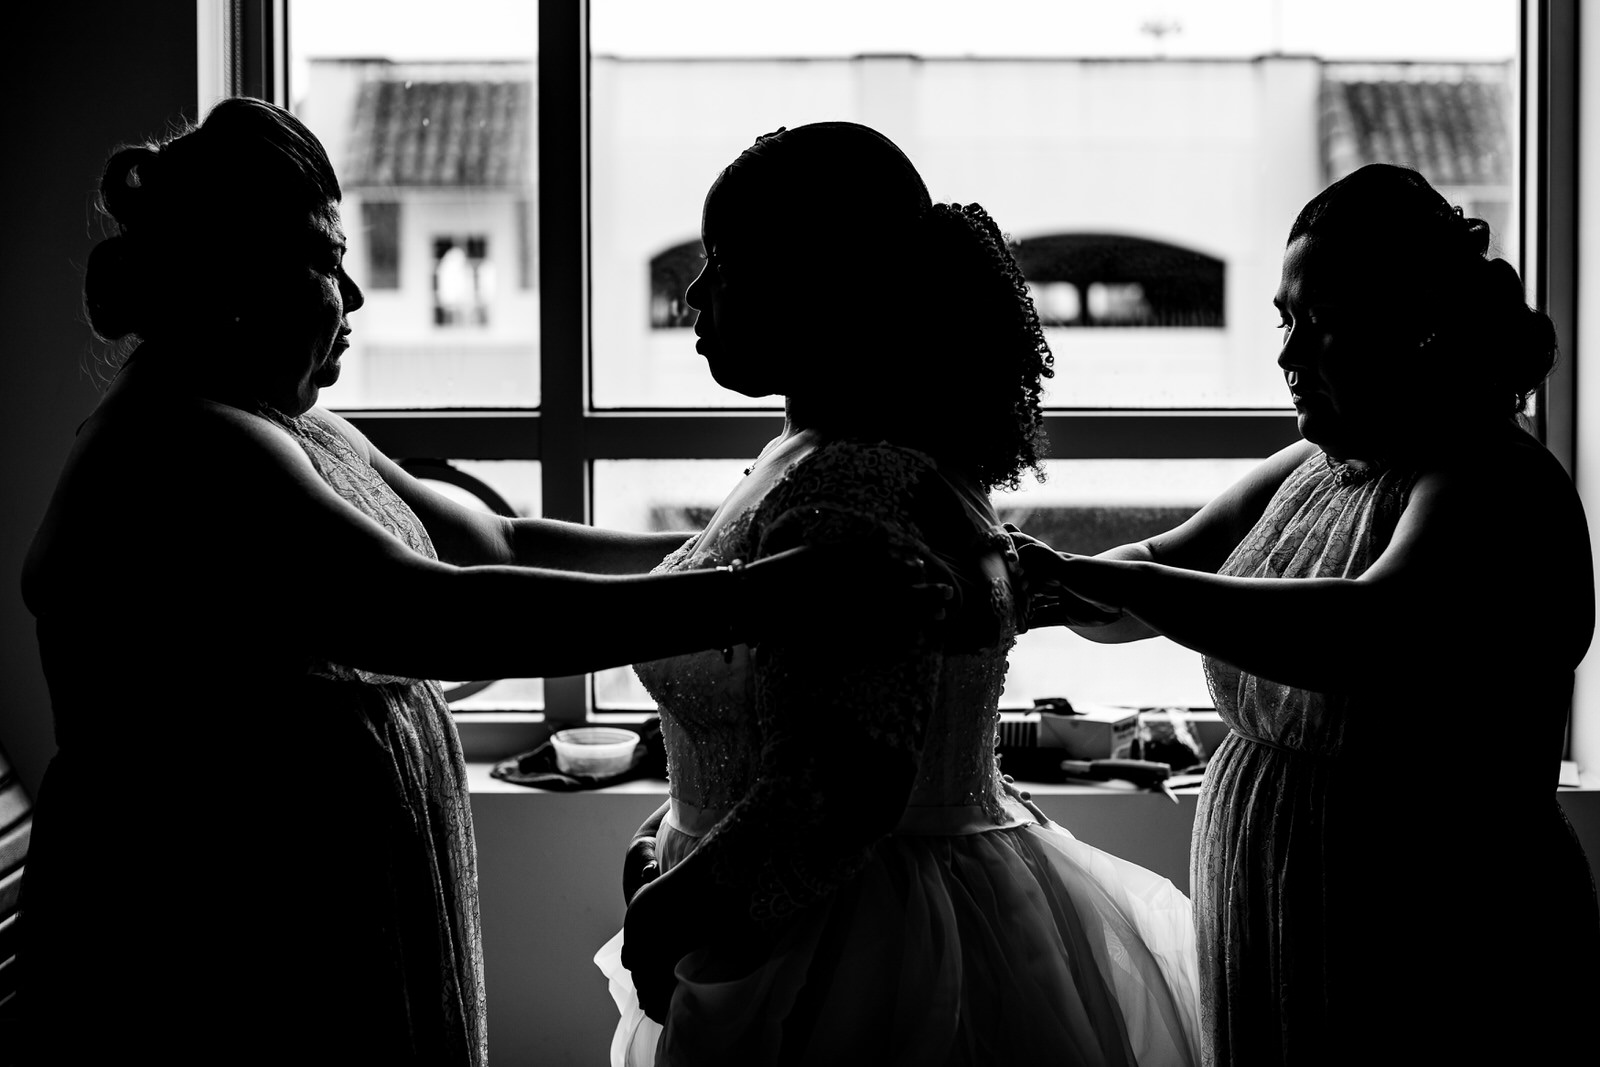 black-and-white-wedding-photgoraphy-photojournlism-moments-documentary.jpg